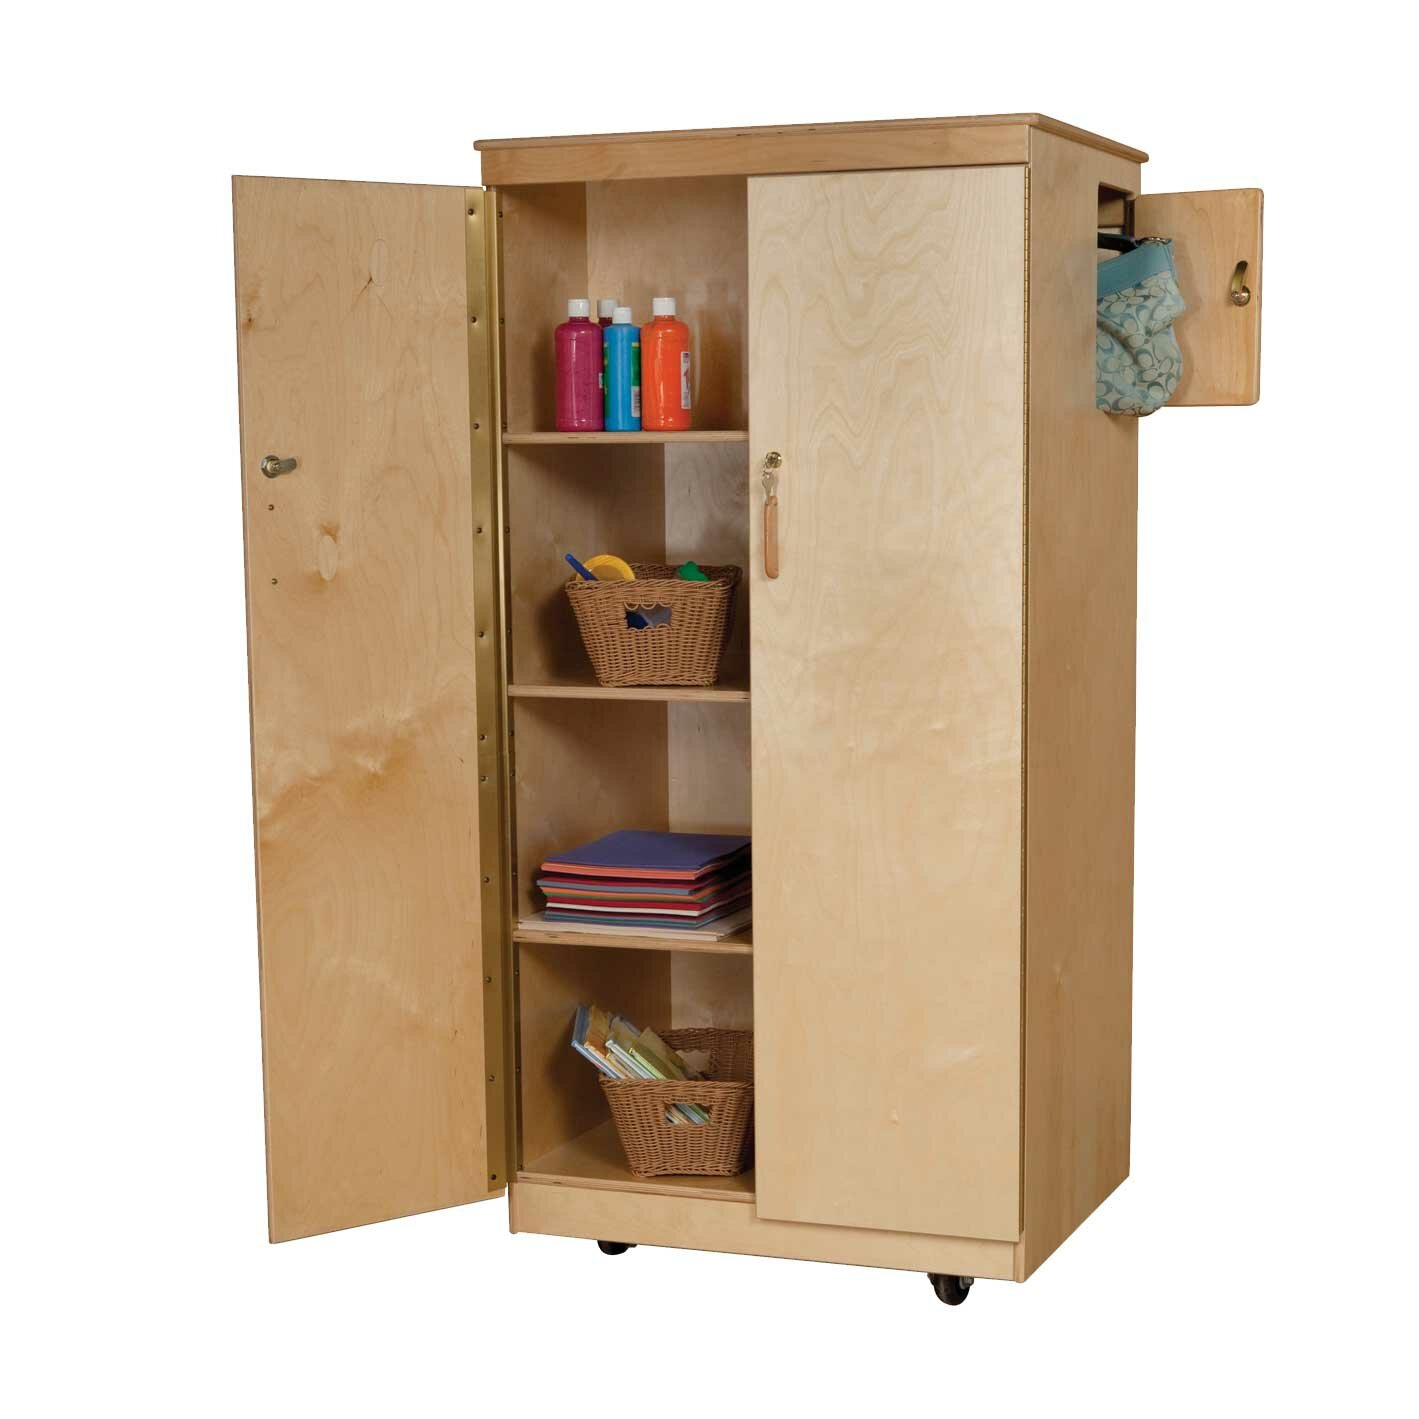 Classroom Cabinet Design : Wood designs teacher s locking cabinet reviews wayfair